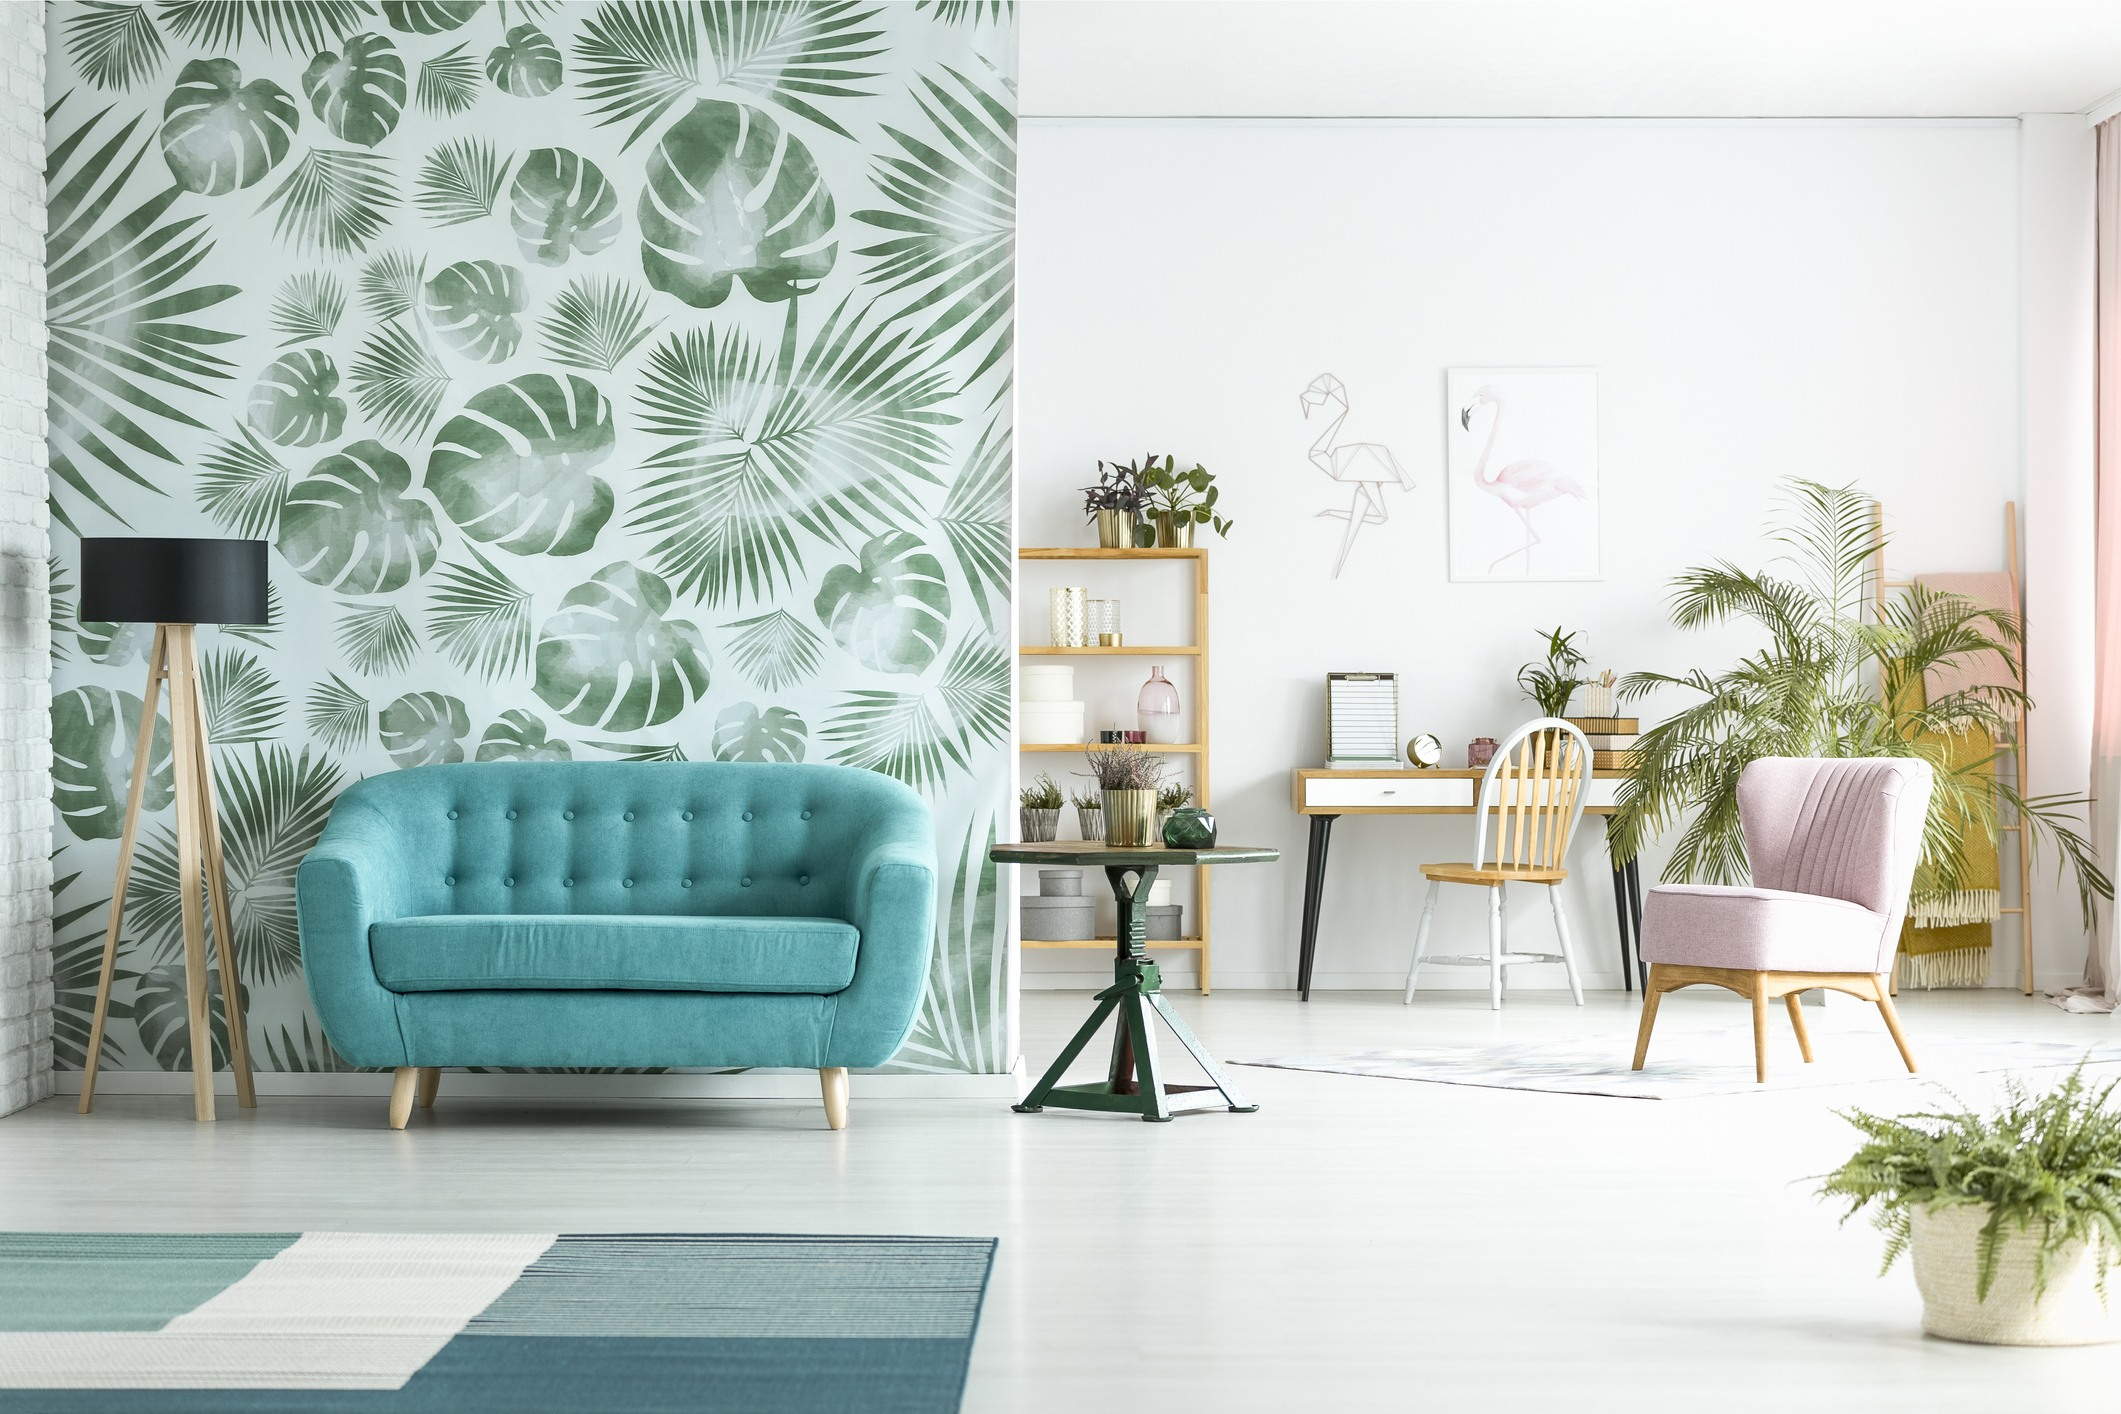 The 15 Most Overused Home Decorating Trends You Won't See ... on Trendy Room  id=44464